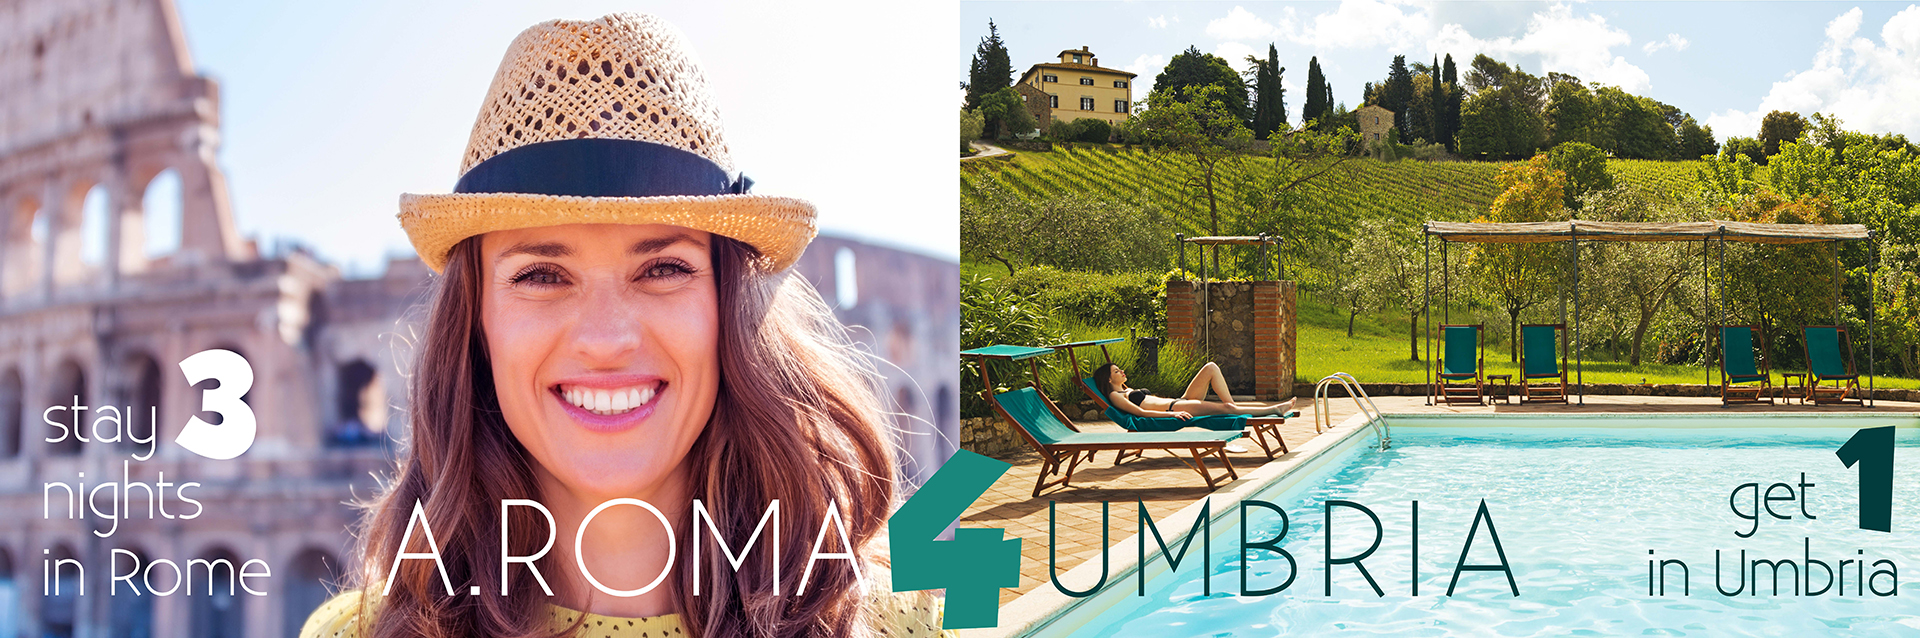 4 night offer 3 nights in rome and free night in Umbria